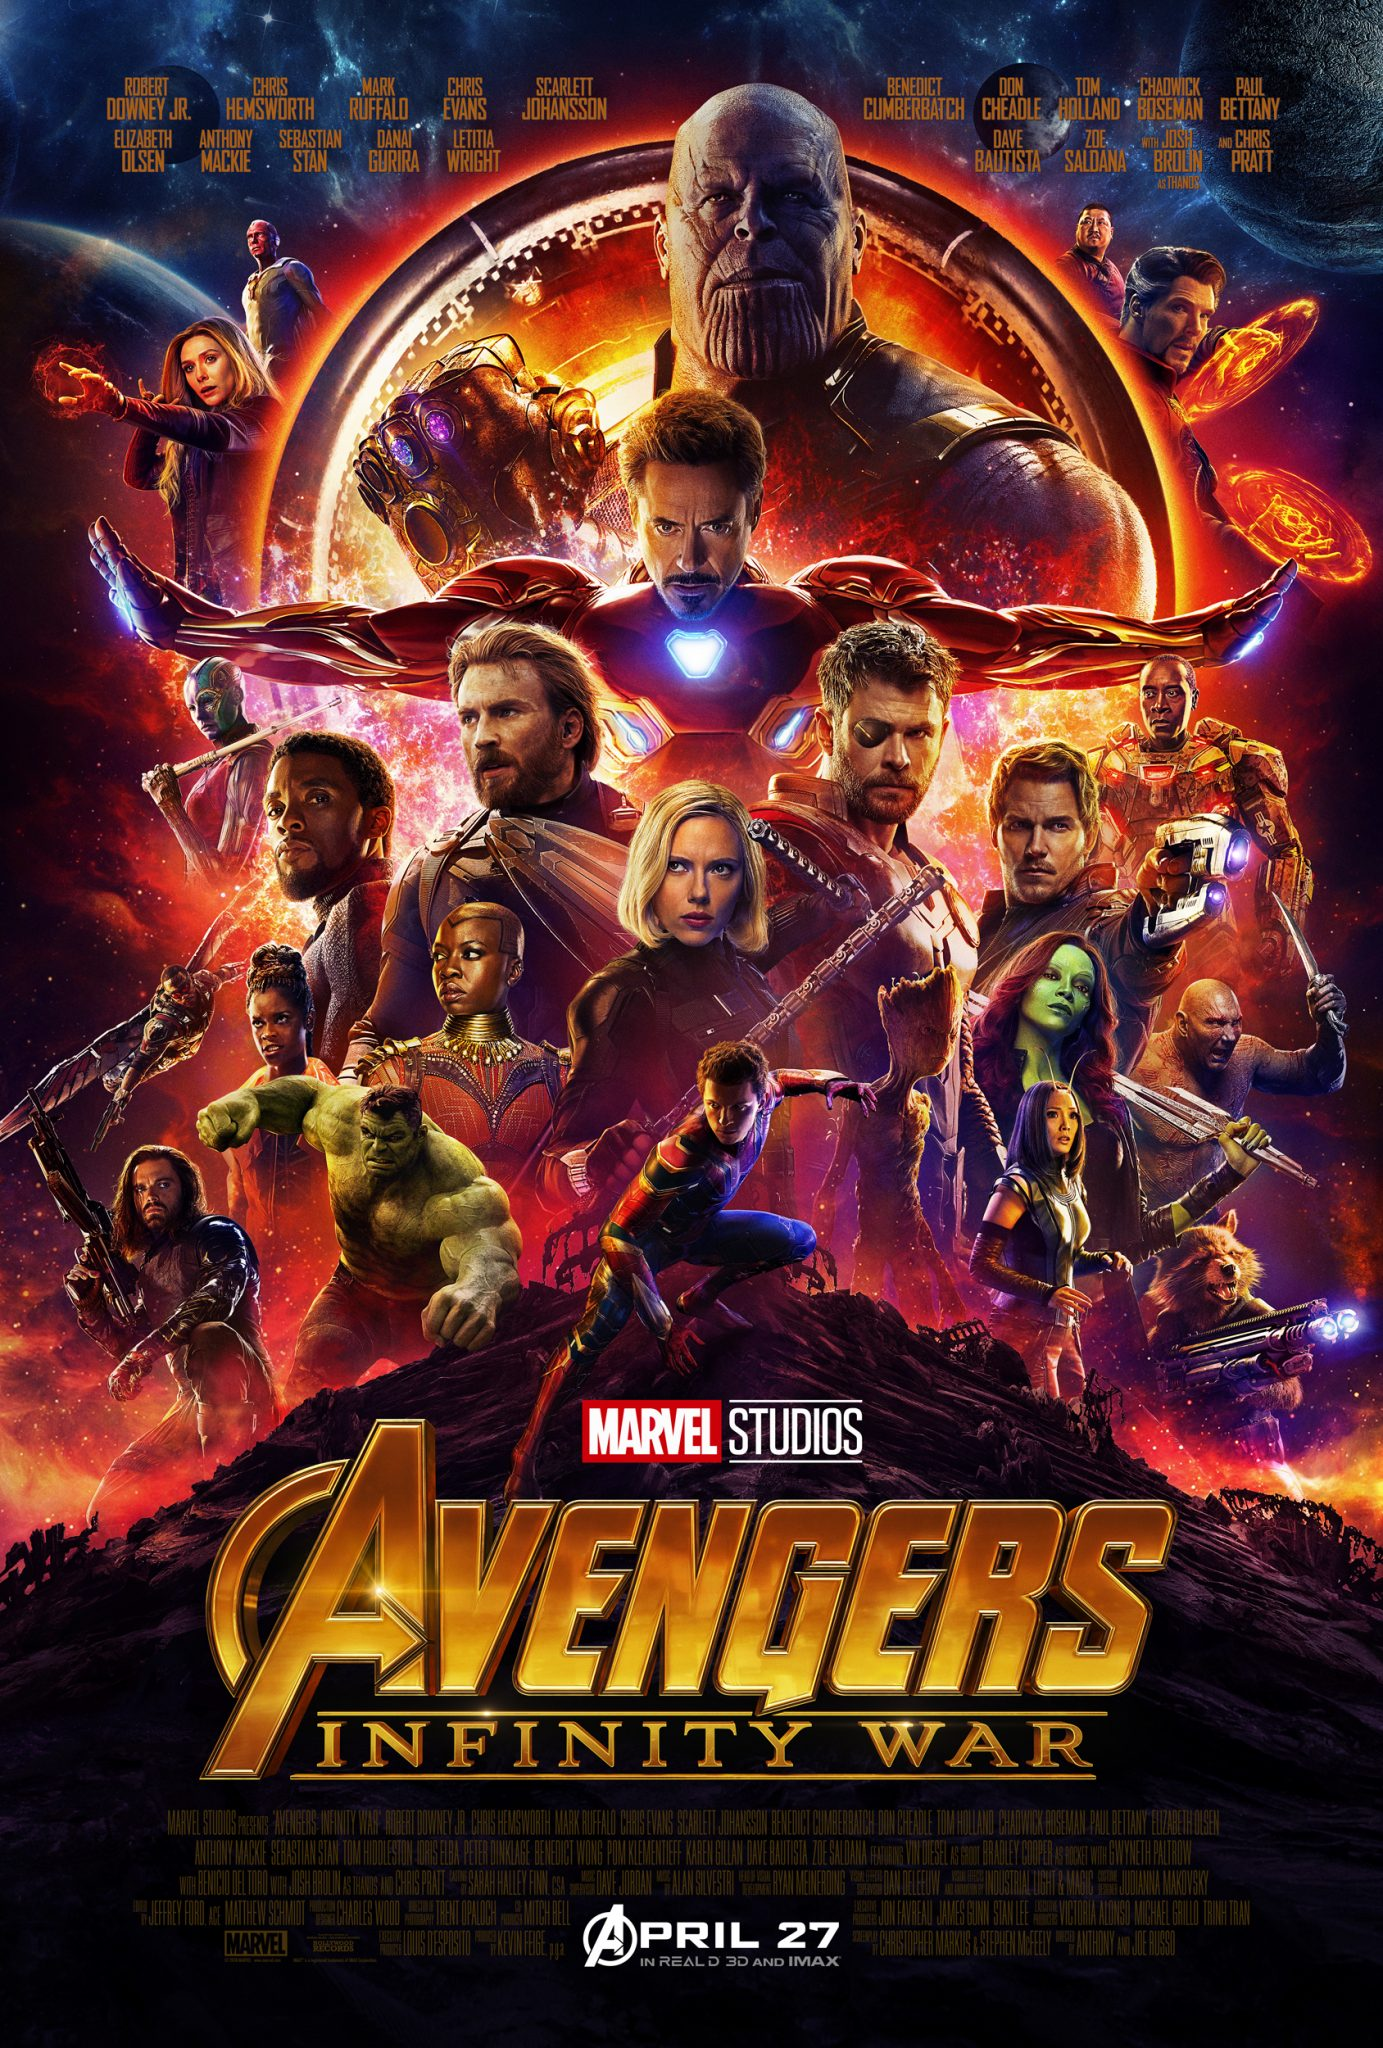 First Look: Marvel Studios' AVENGERS: INFINITY WAR Trailer And Poster